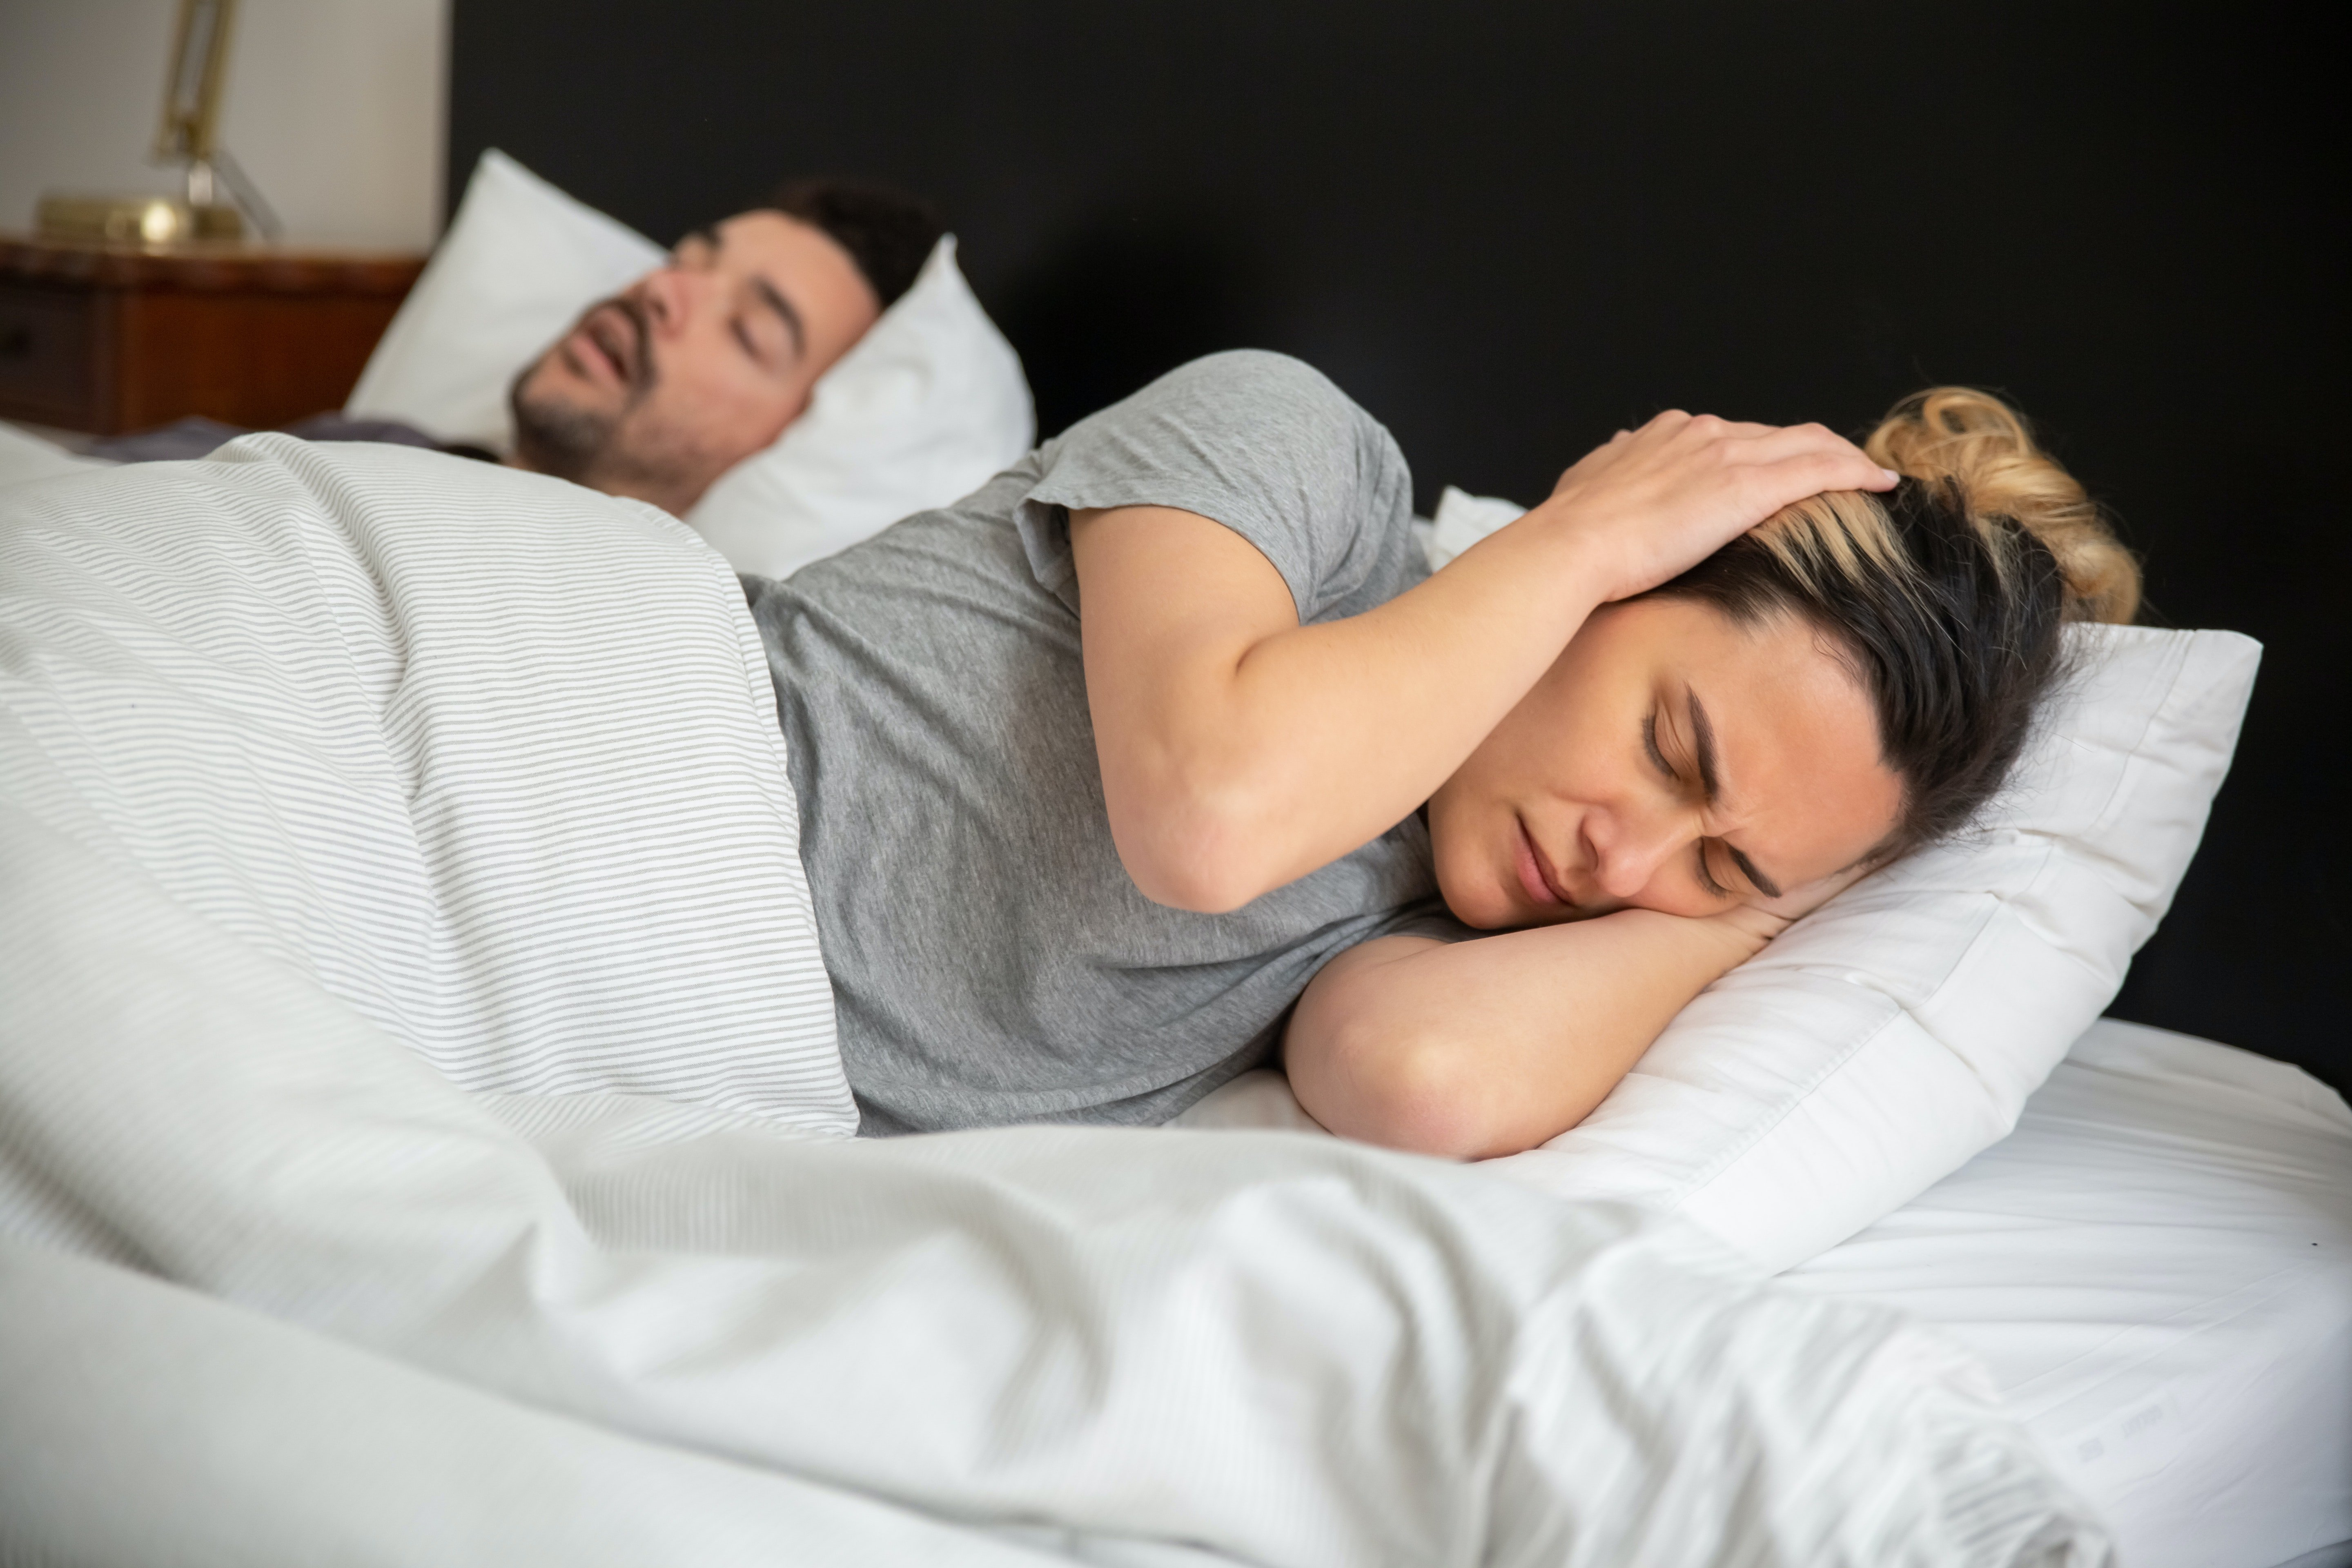 Her husband snored so loudly! | Photo: Pexels/Kampus Production